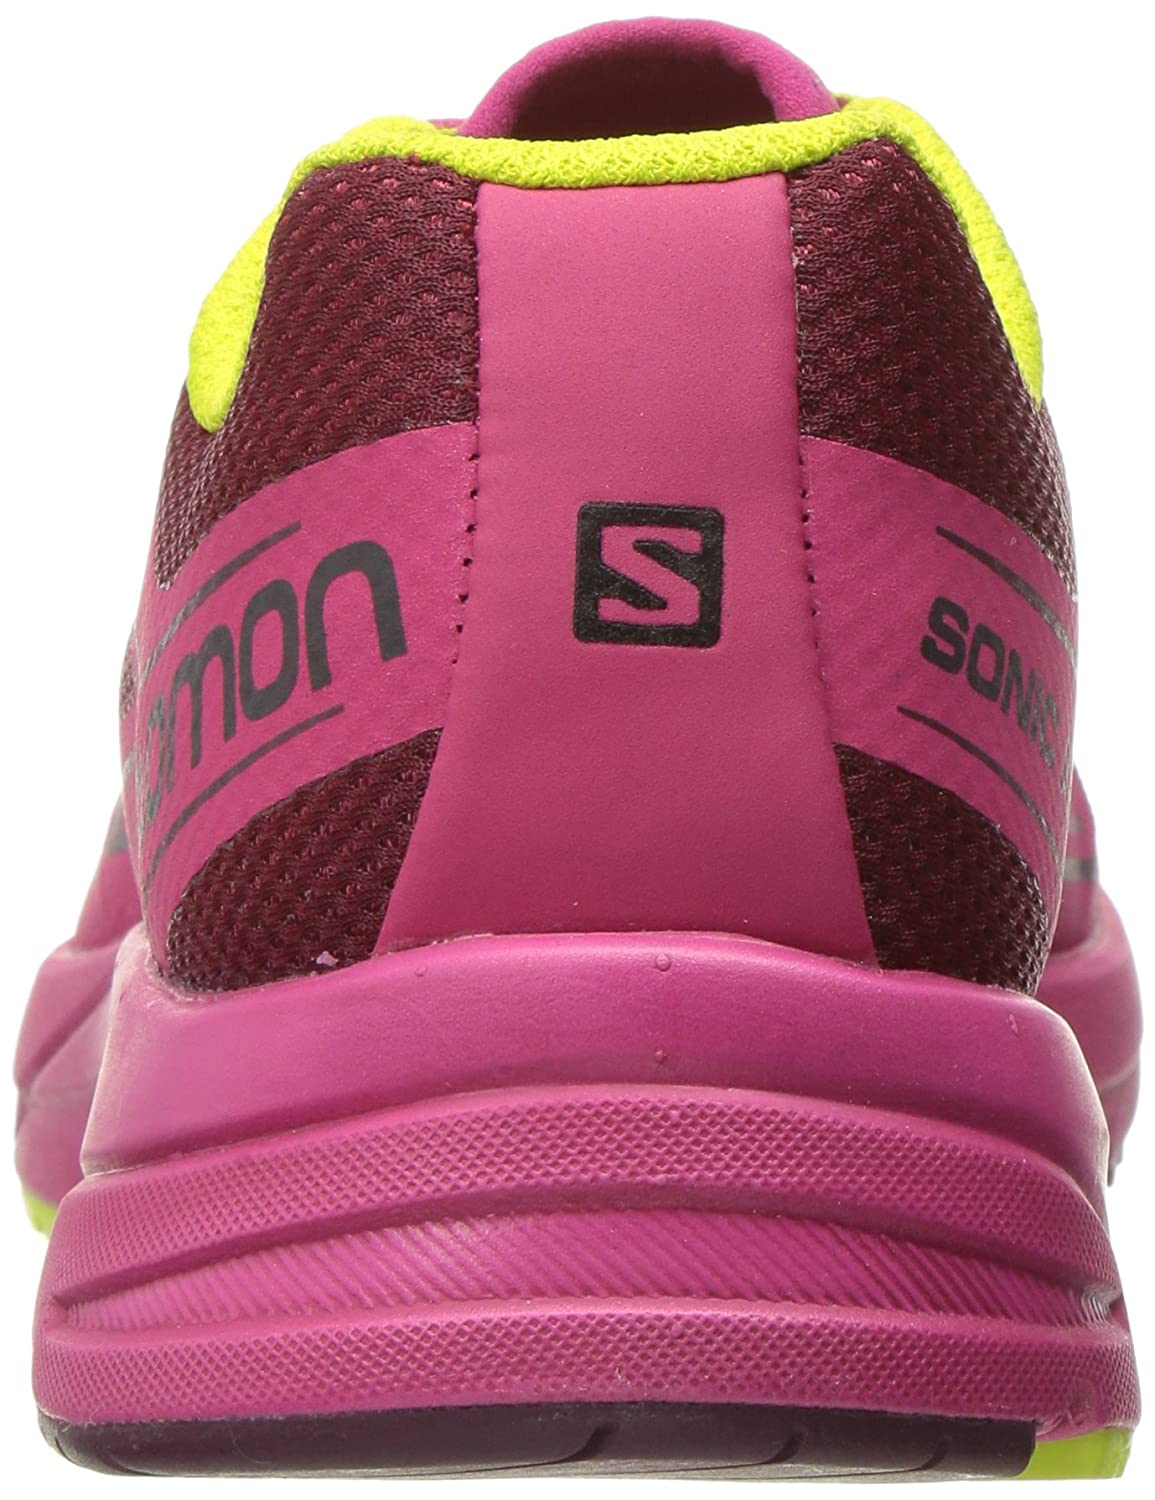 Salomon 6 Women's Sonic Aero W L39349700 Trail Runner B01HD1WRCC 6 Salomon B(M) US|Tibetan Red/Sangria/Lime Punch. 6e2f97